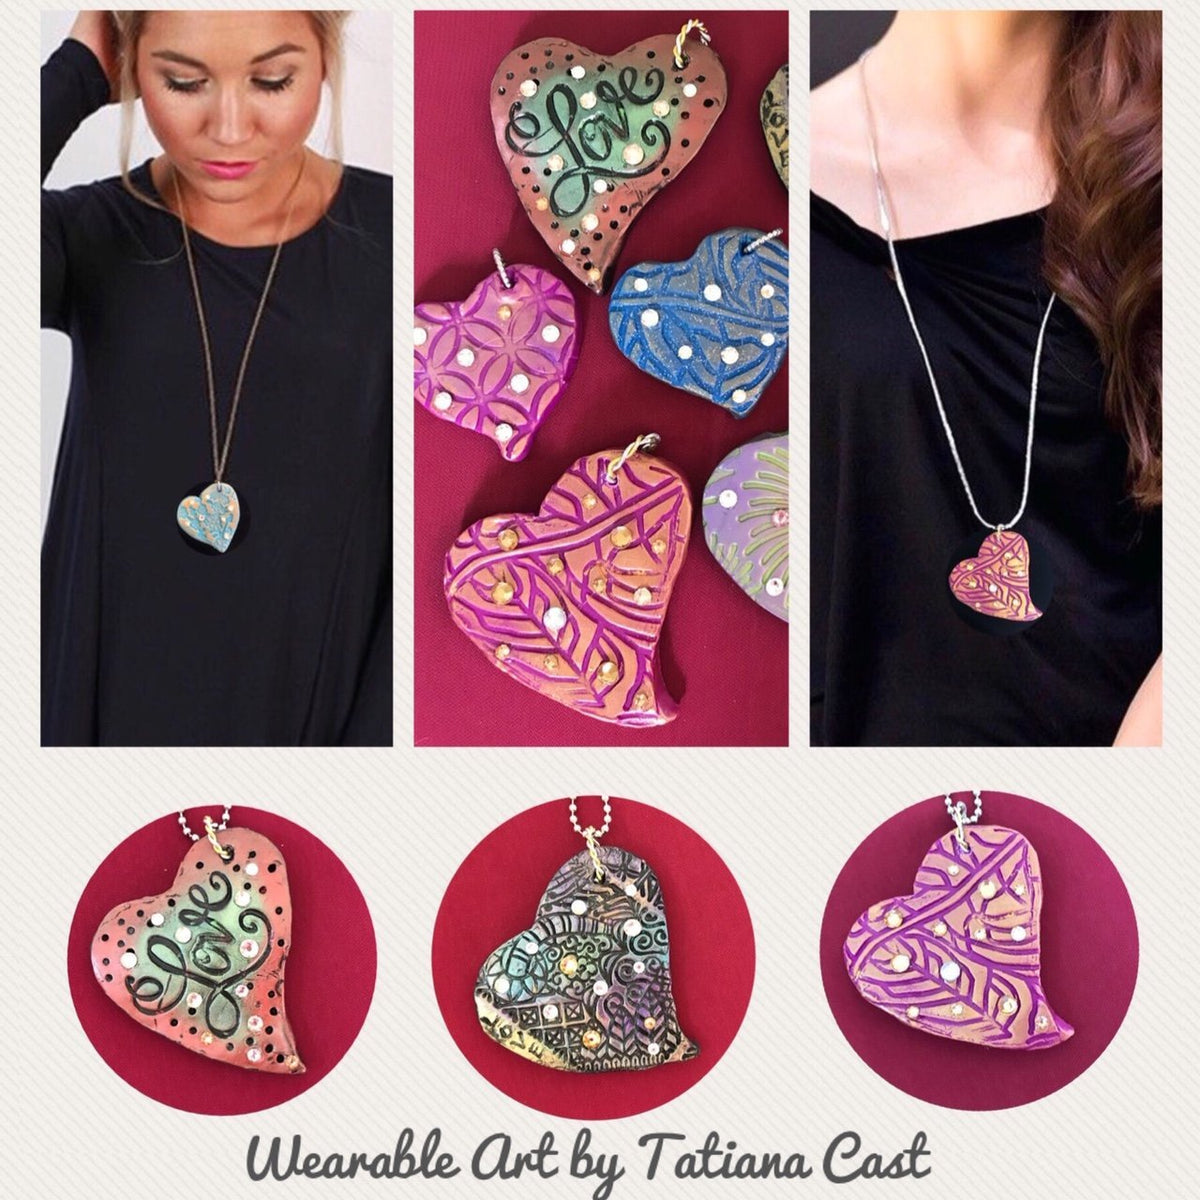 Wearable Art - Large Heart Pendant -Love3 - TatianaCast